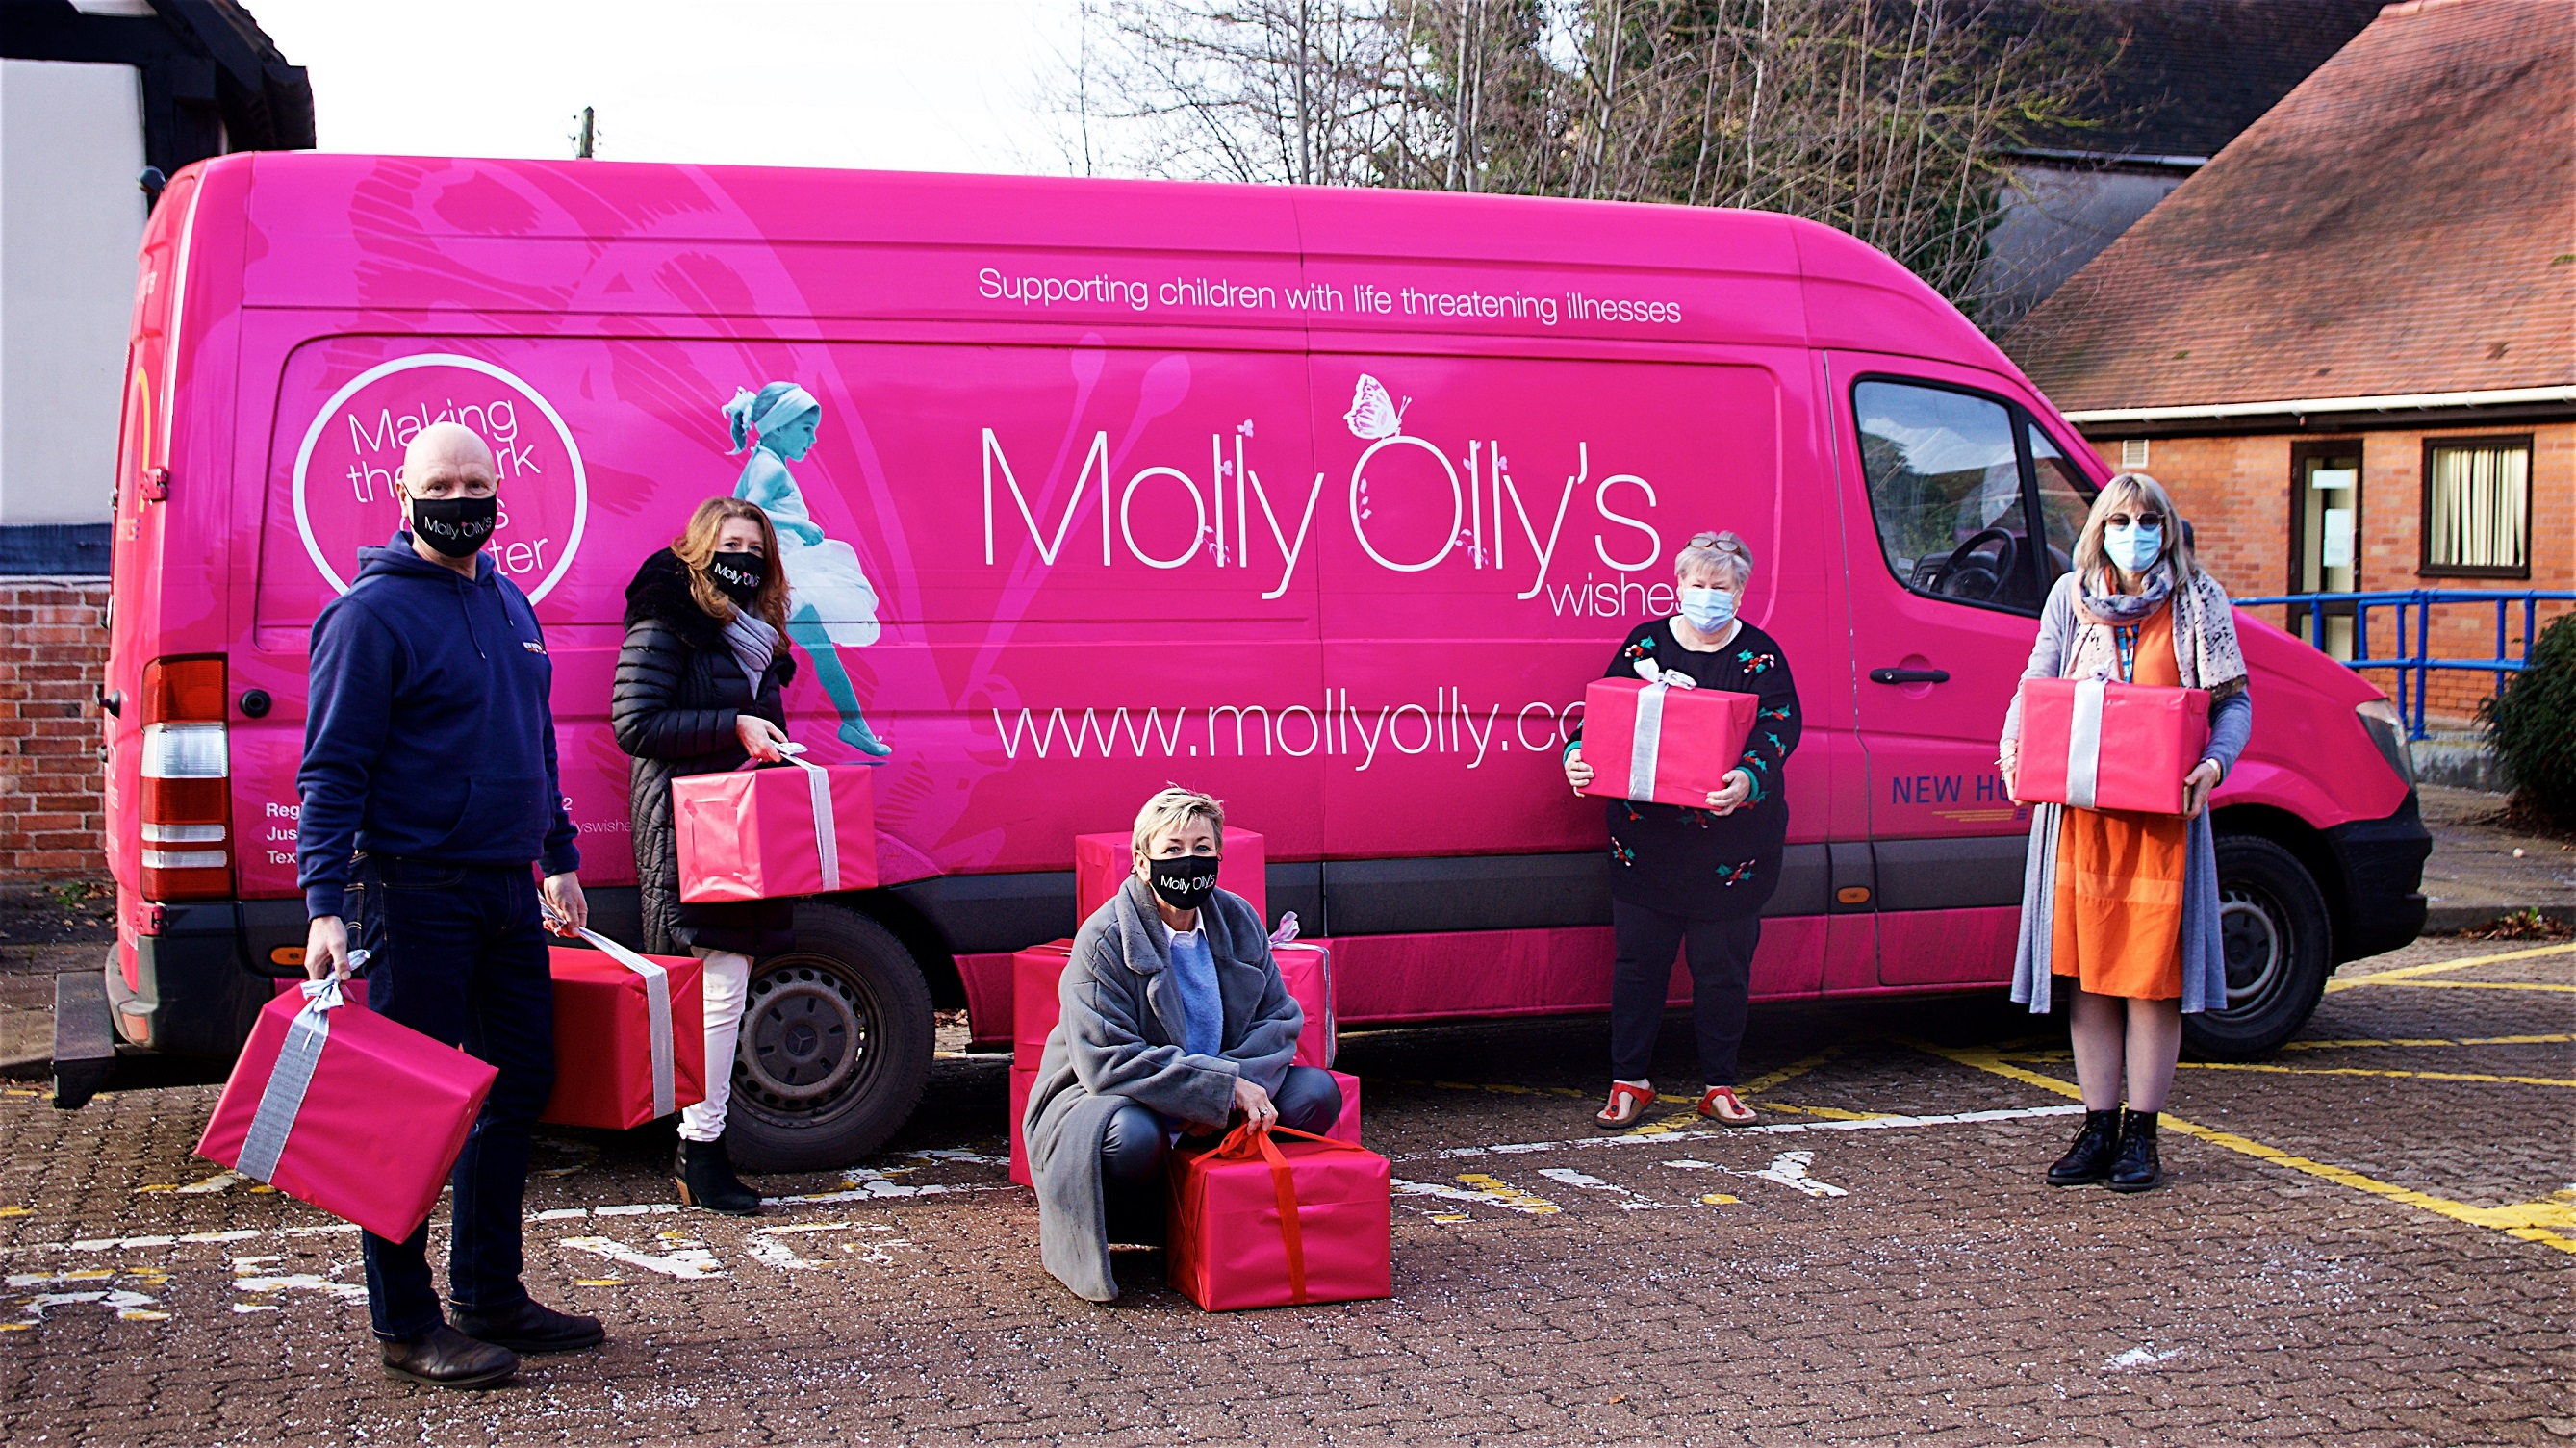 Oakland International and Molly Olly's Wishes Partner to Deliver Food and Children's Hampers to Families in Need